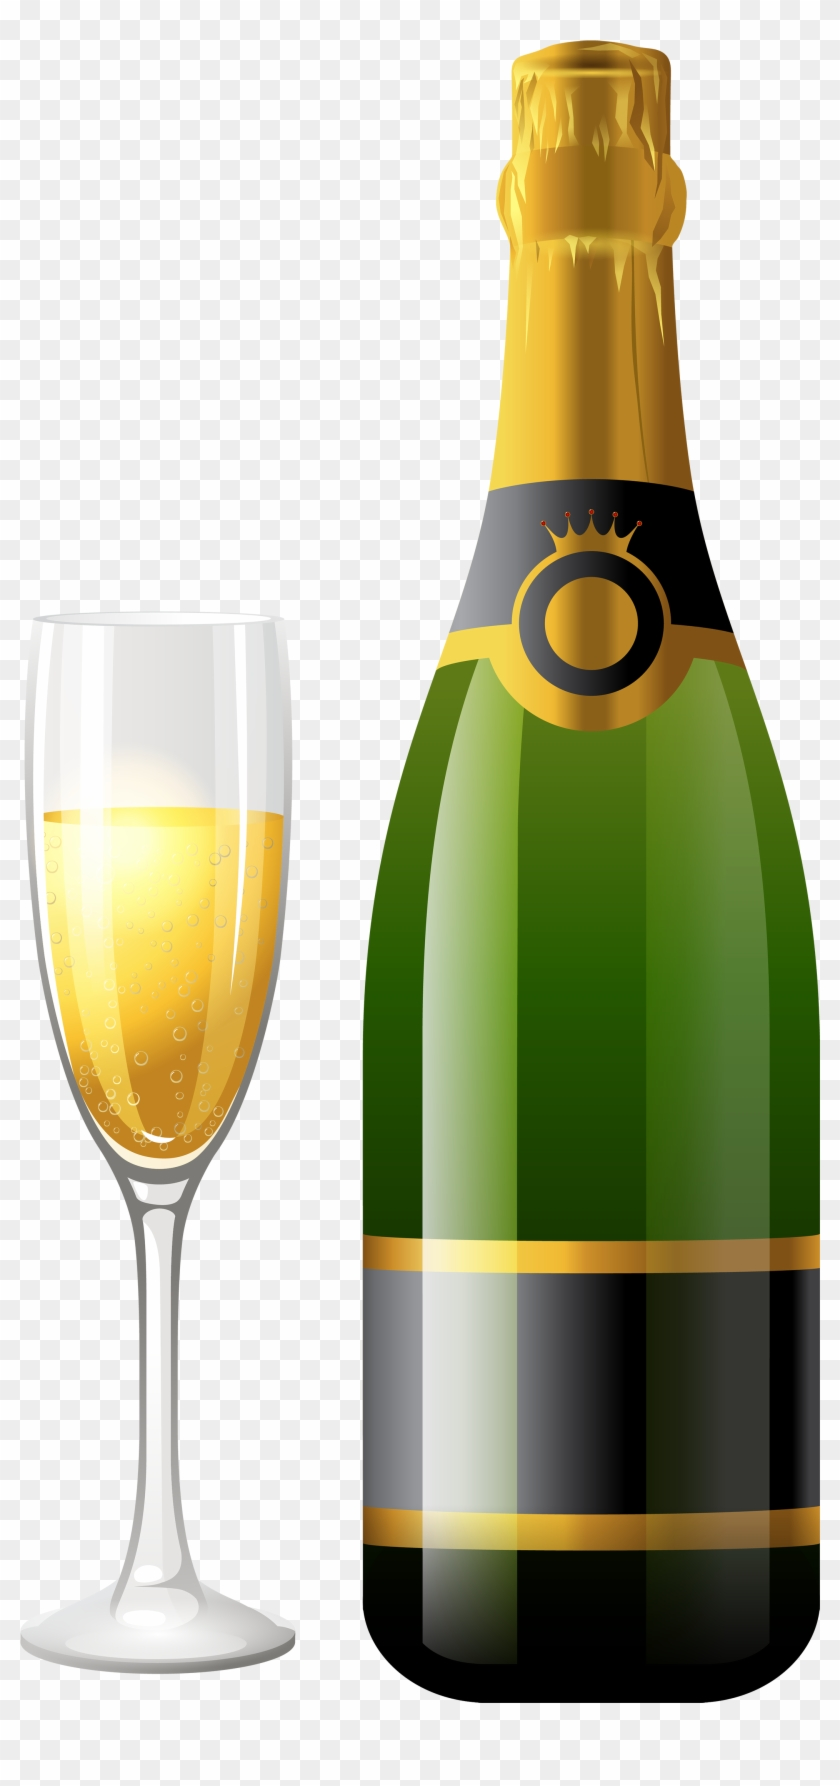 Champagne Bottle With Glass Png Clipart Best Web Clipart - Champagne Png #31916